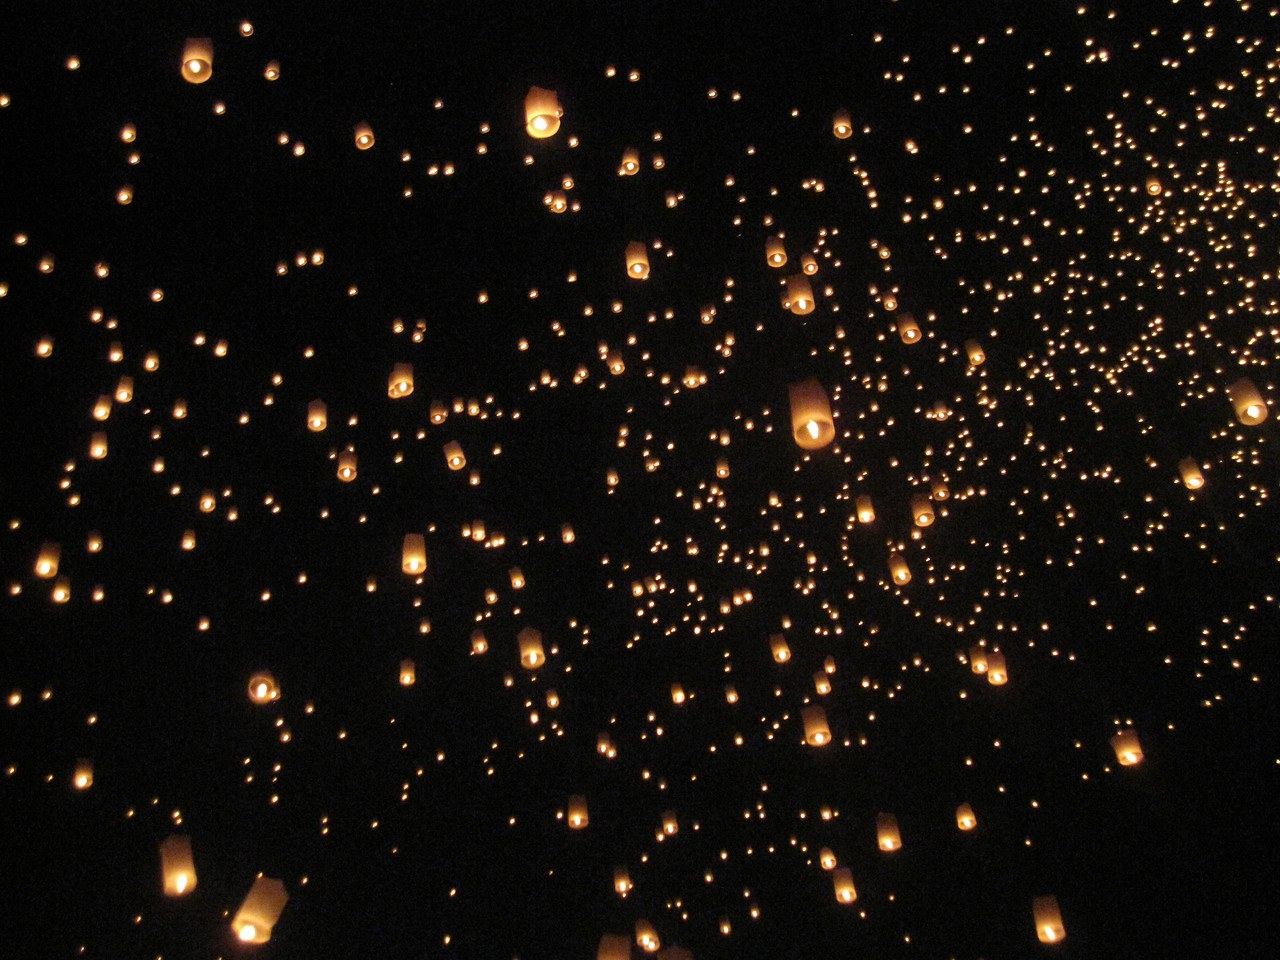 Lanterns in the night sky during Loy Krathong in Chiang Mai, Thailand